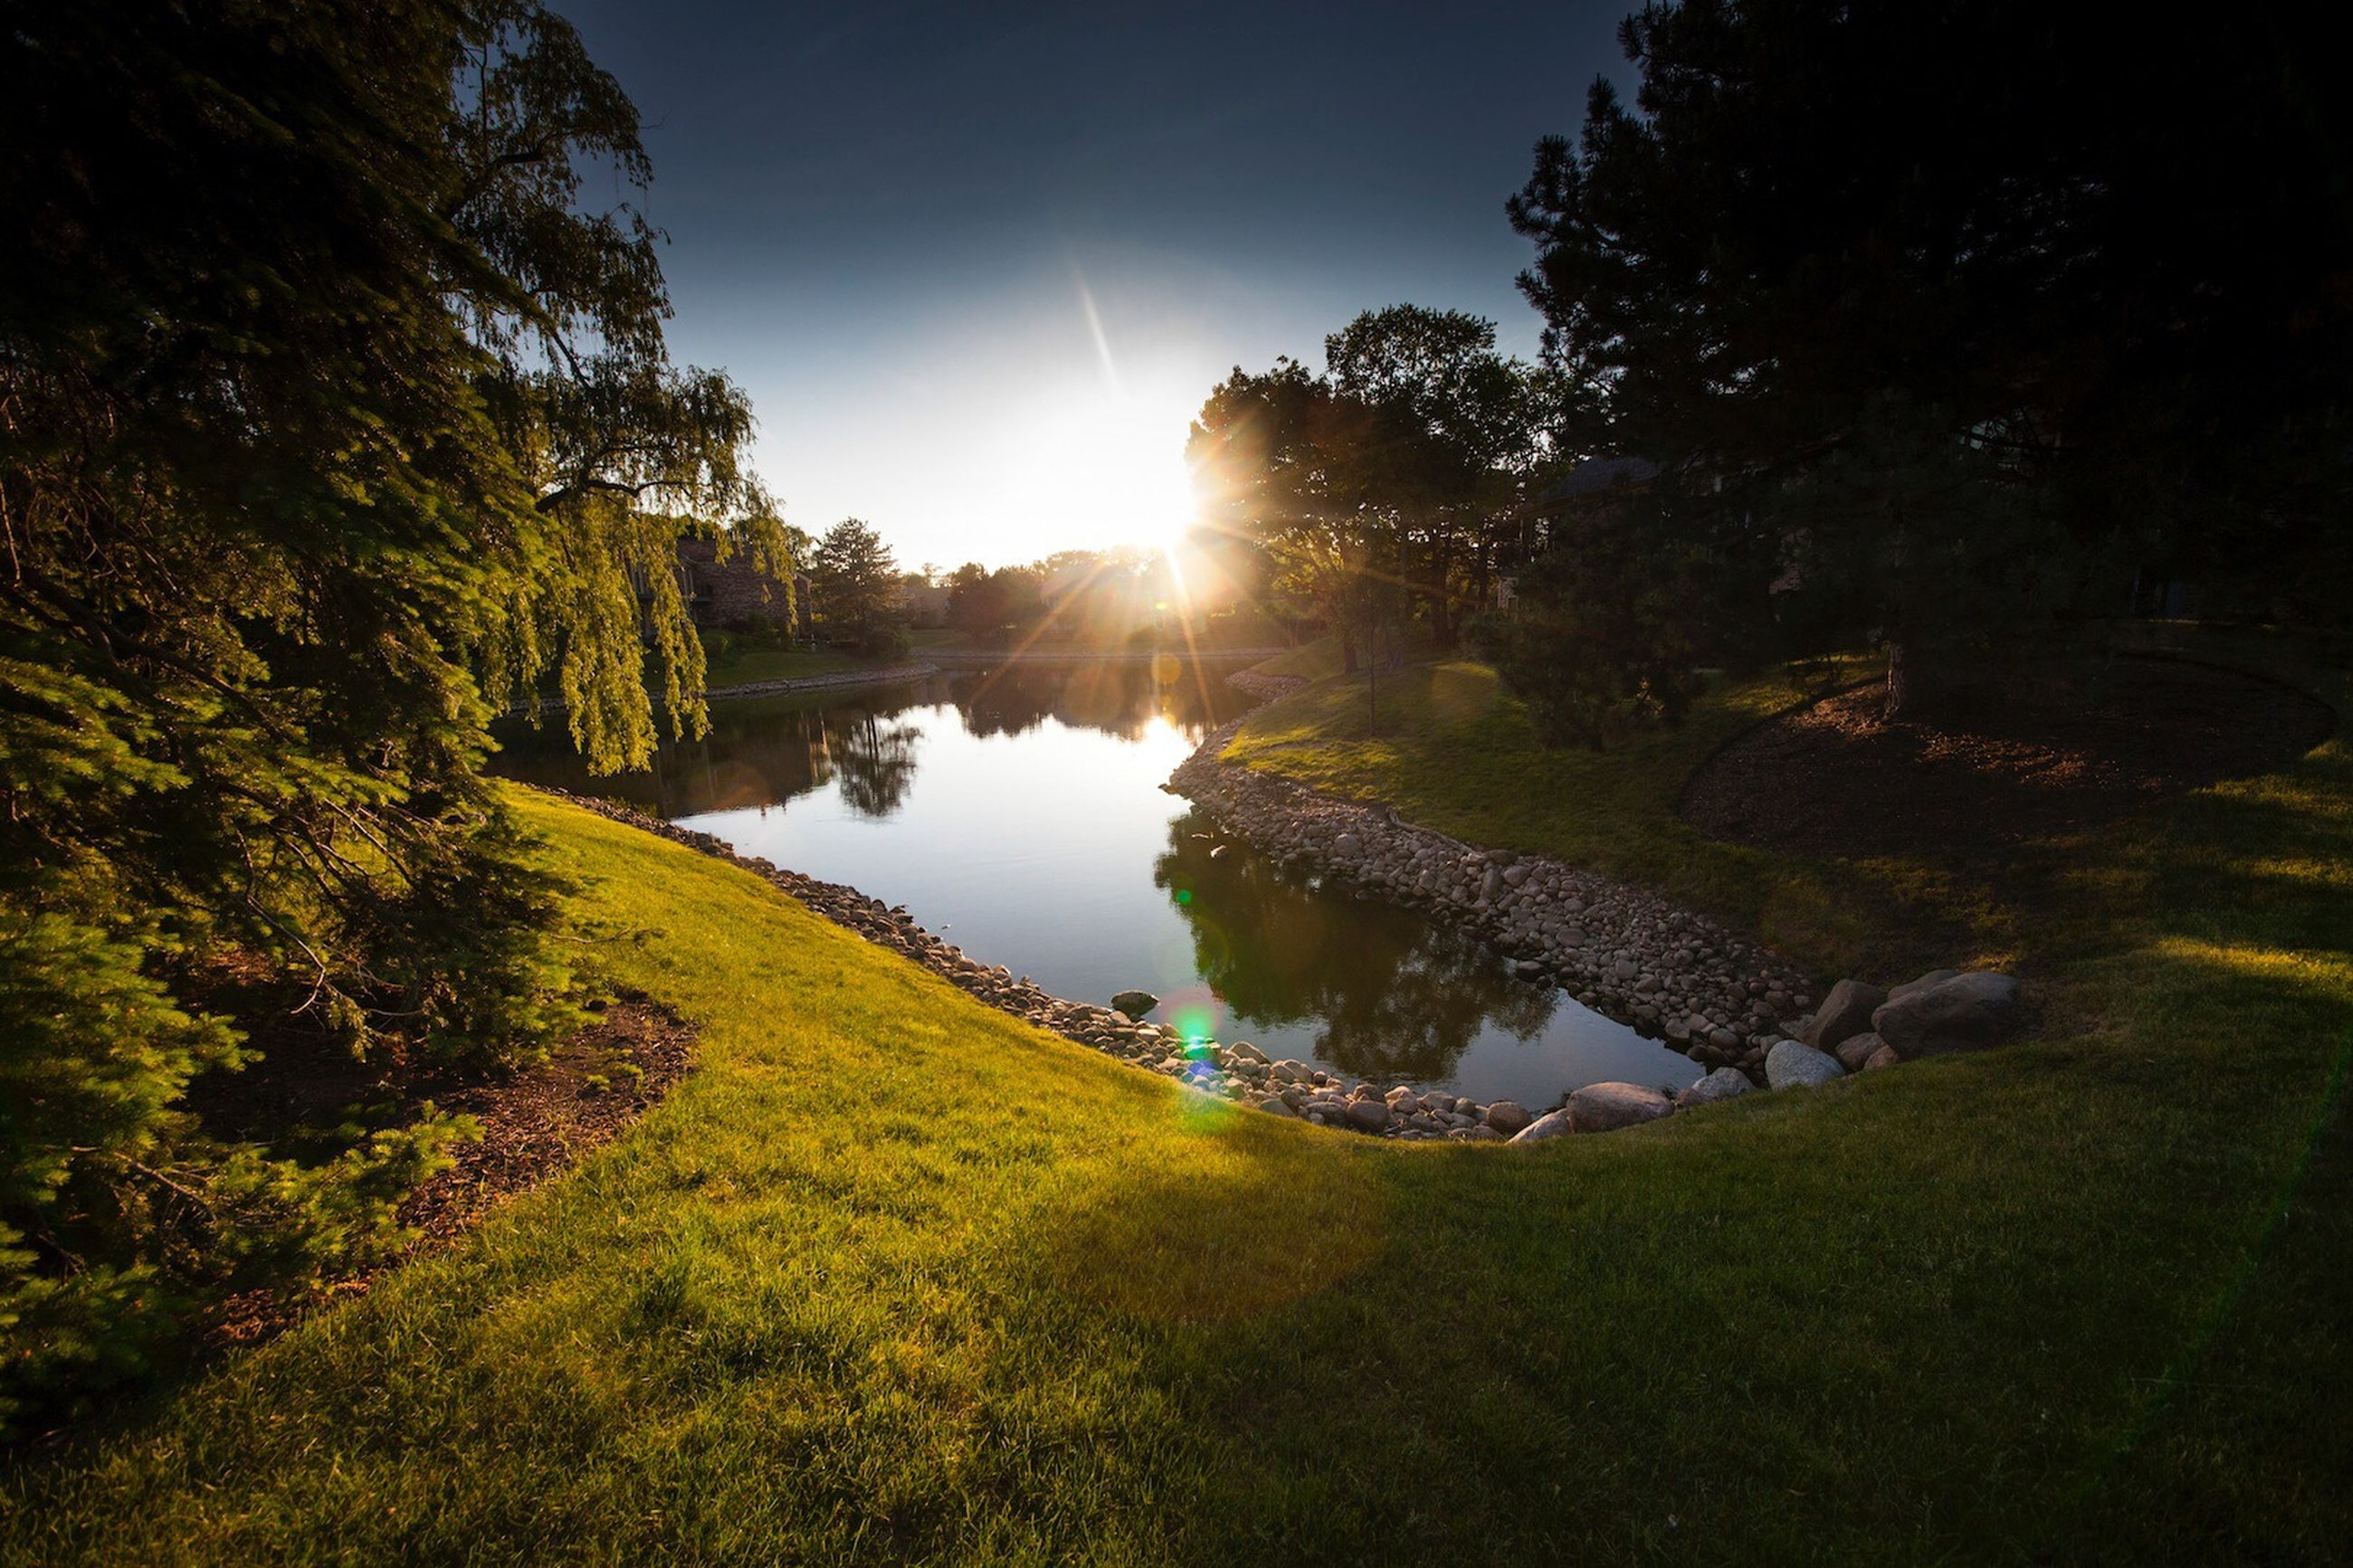 tree, water, sun, sunlight, tranquility, sunbeam, reflection, growth, tranquil scene, grass, nature, clear sky, green color, beauty in nature, lens flare, scenics, lake, river, sky, plant